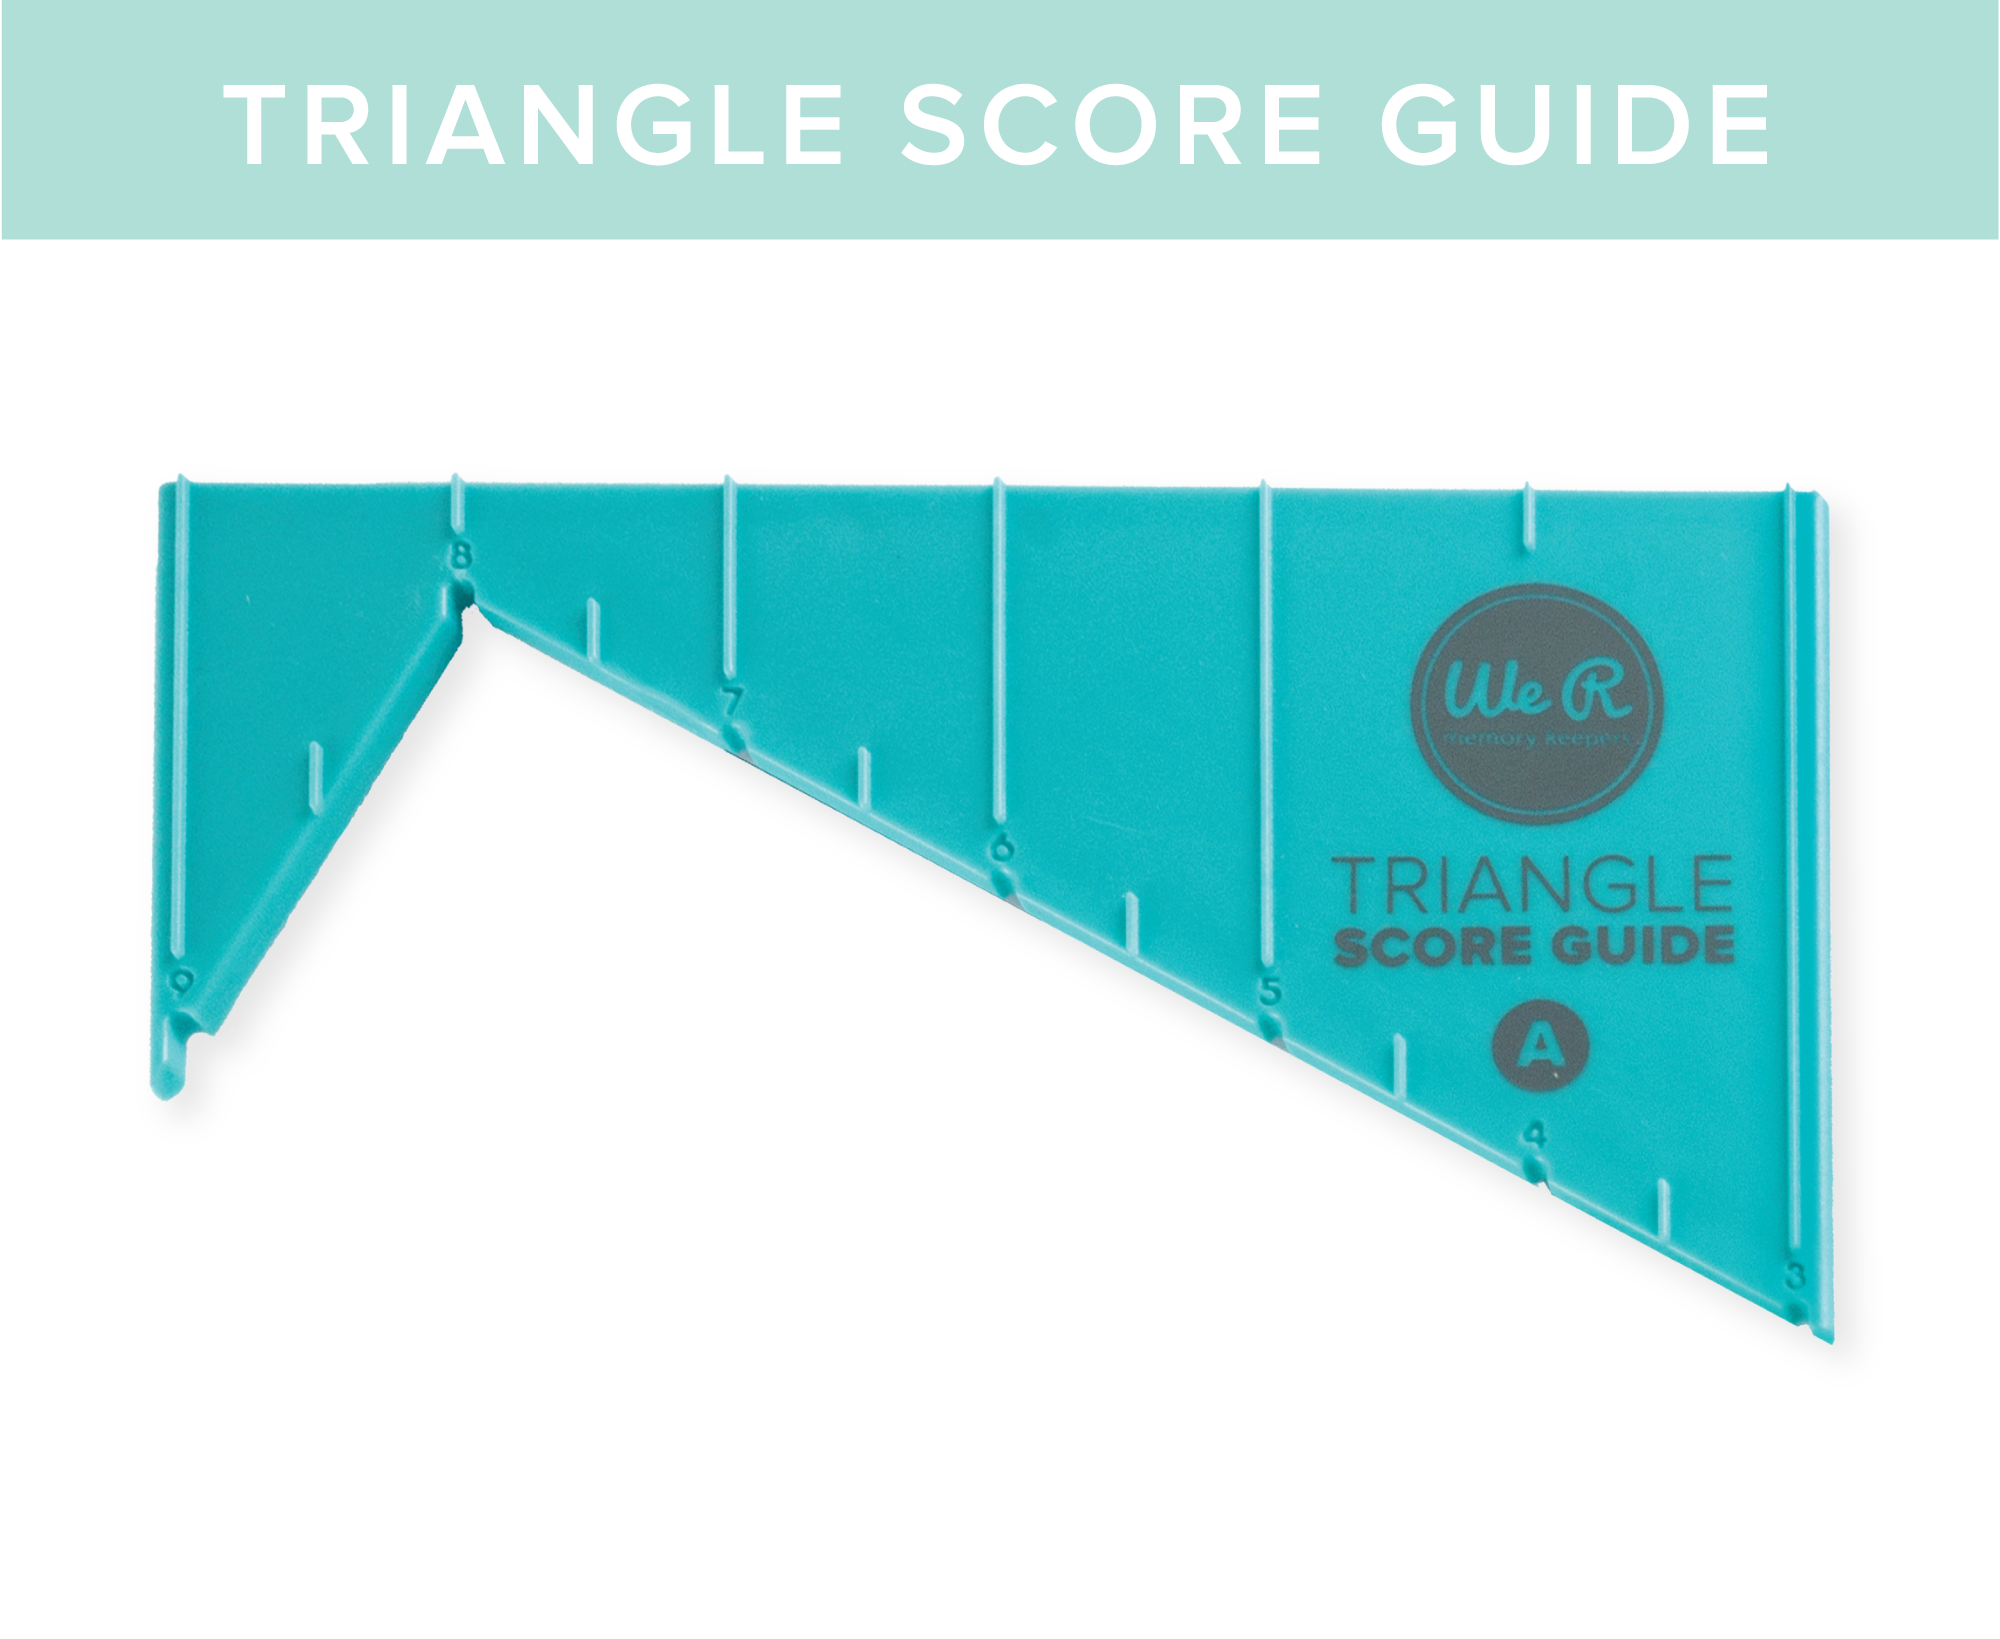 WR_TriangleScoreGuide_Instructions_Links